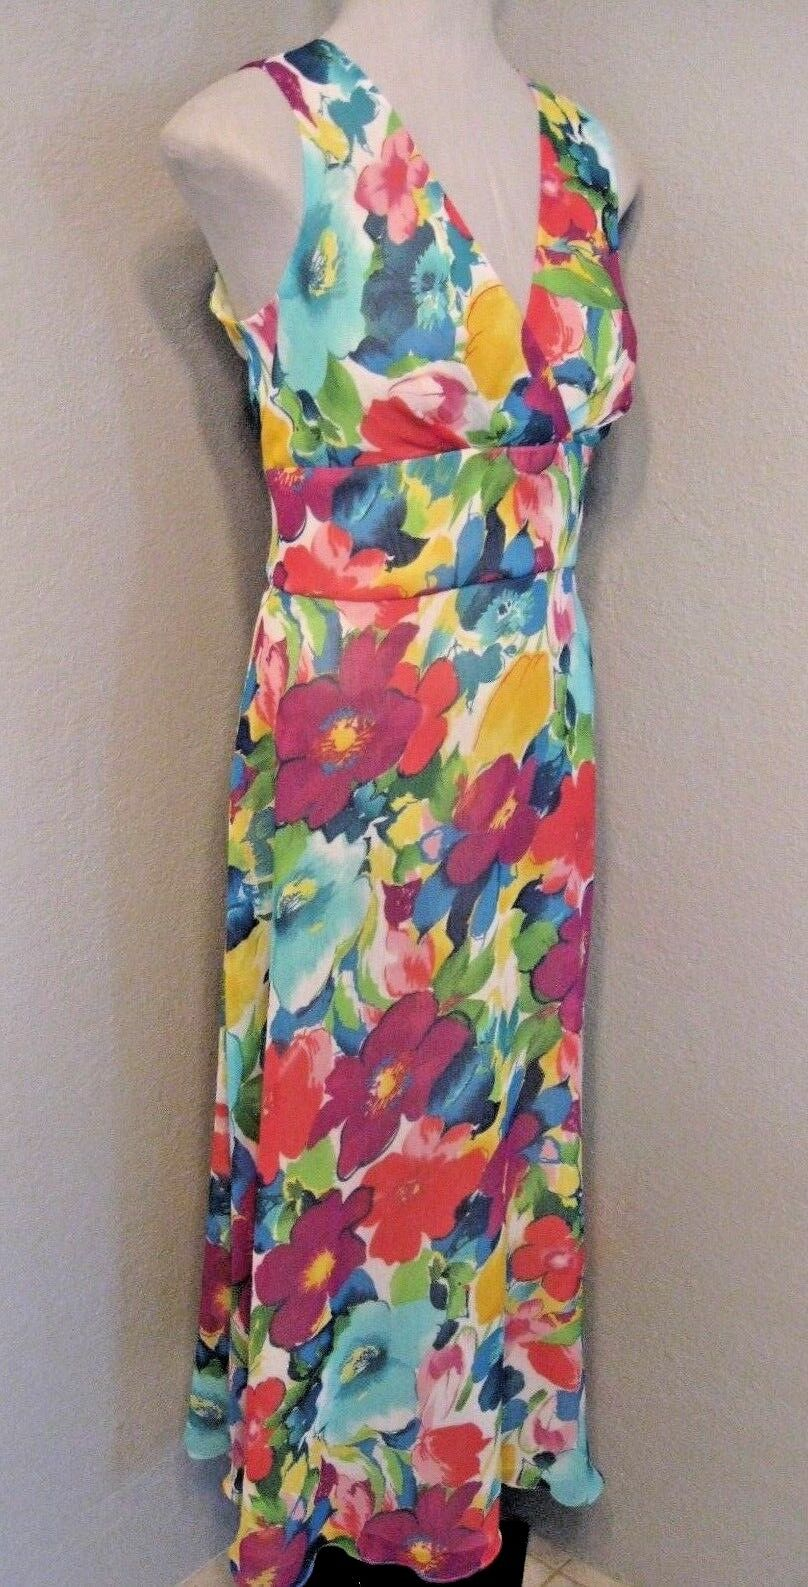 Coldwater Creek NWT Dress Sz. 10 Sheer Floral Print Sleeveless Lined